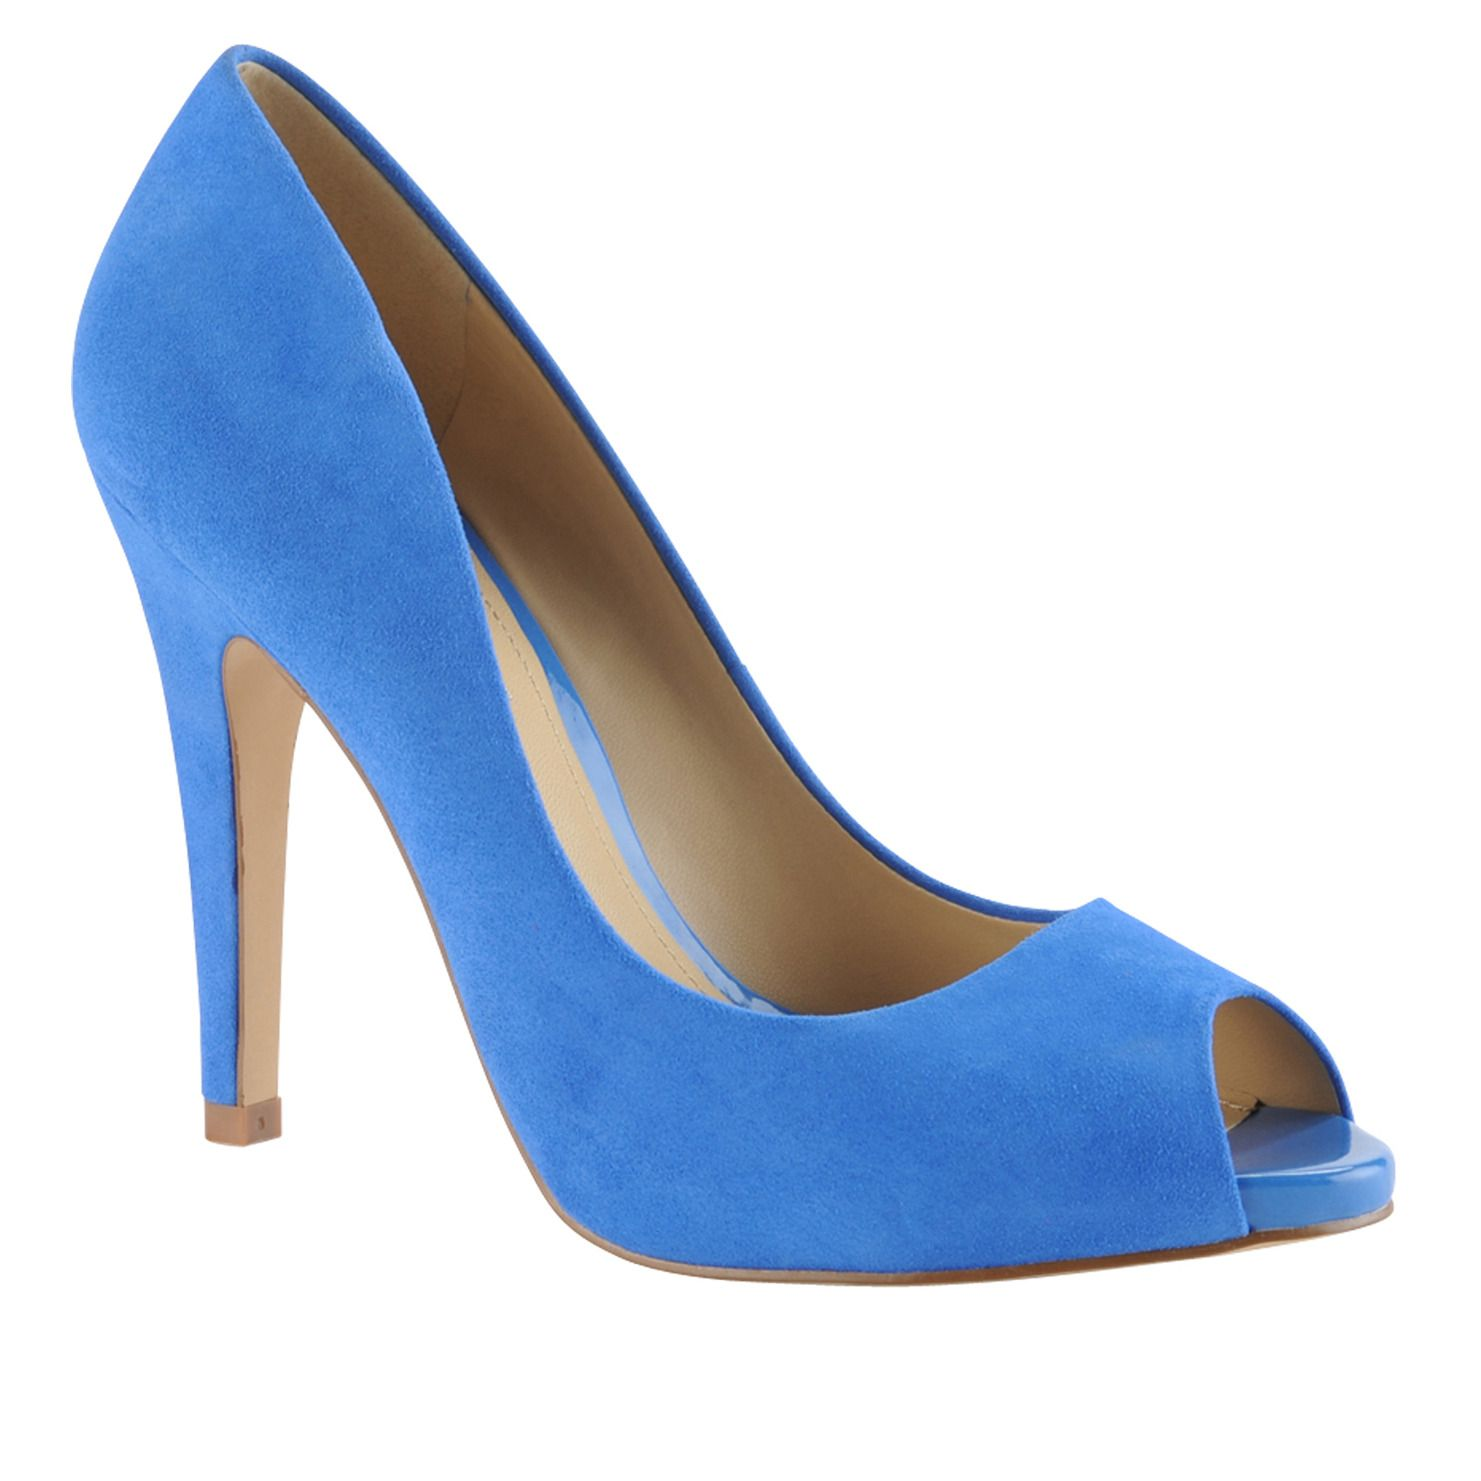 It's like wearing the sky on your feet!! BAYNE - women's peep-toe pumps at ALDO Shoes.